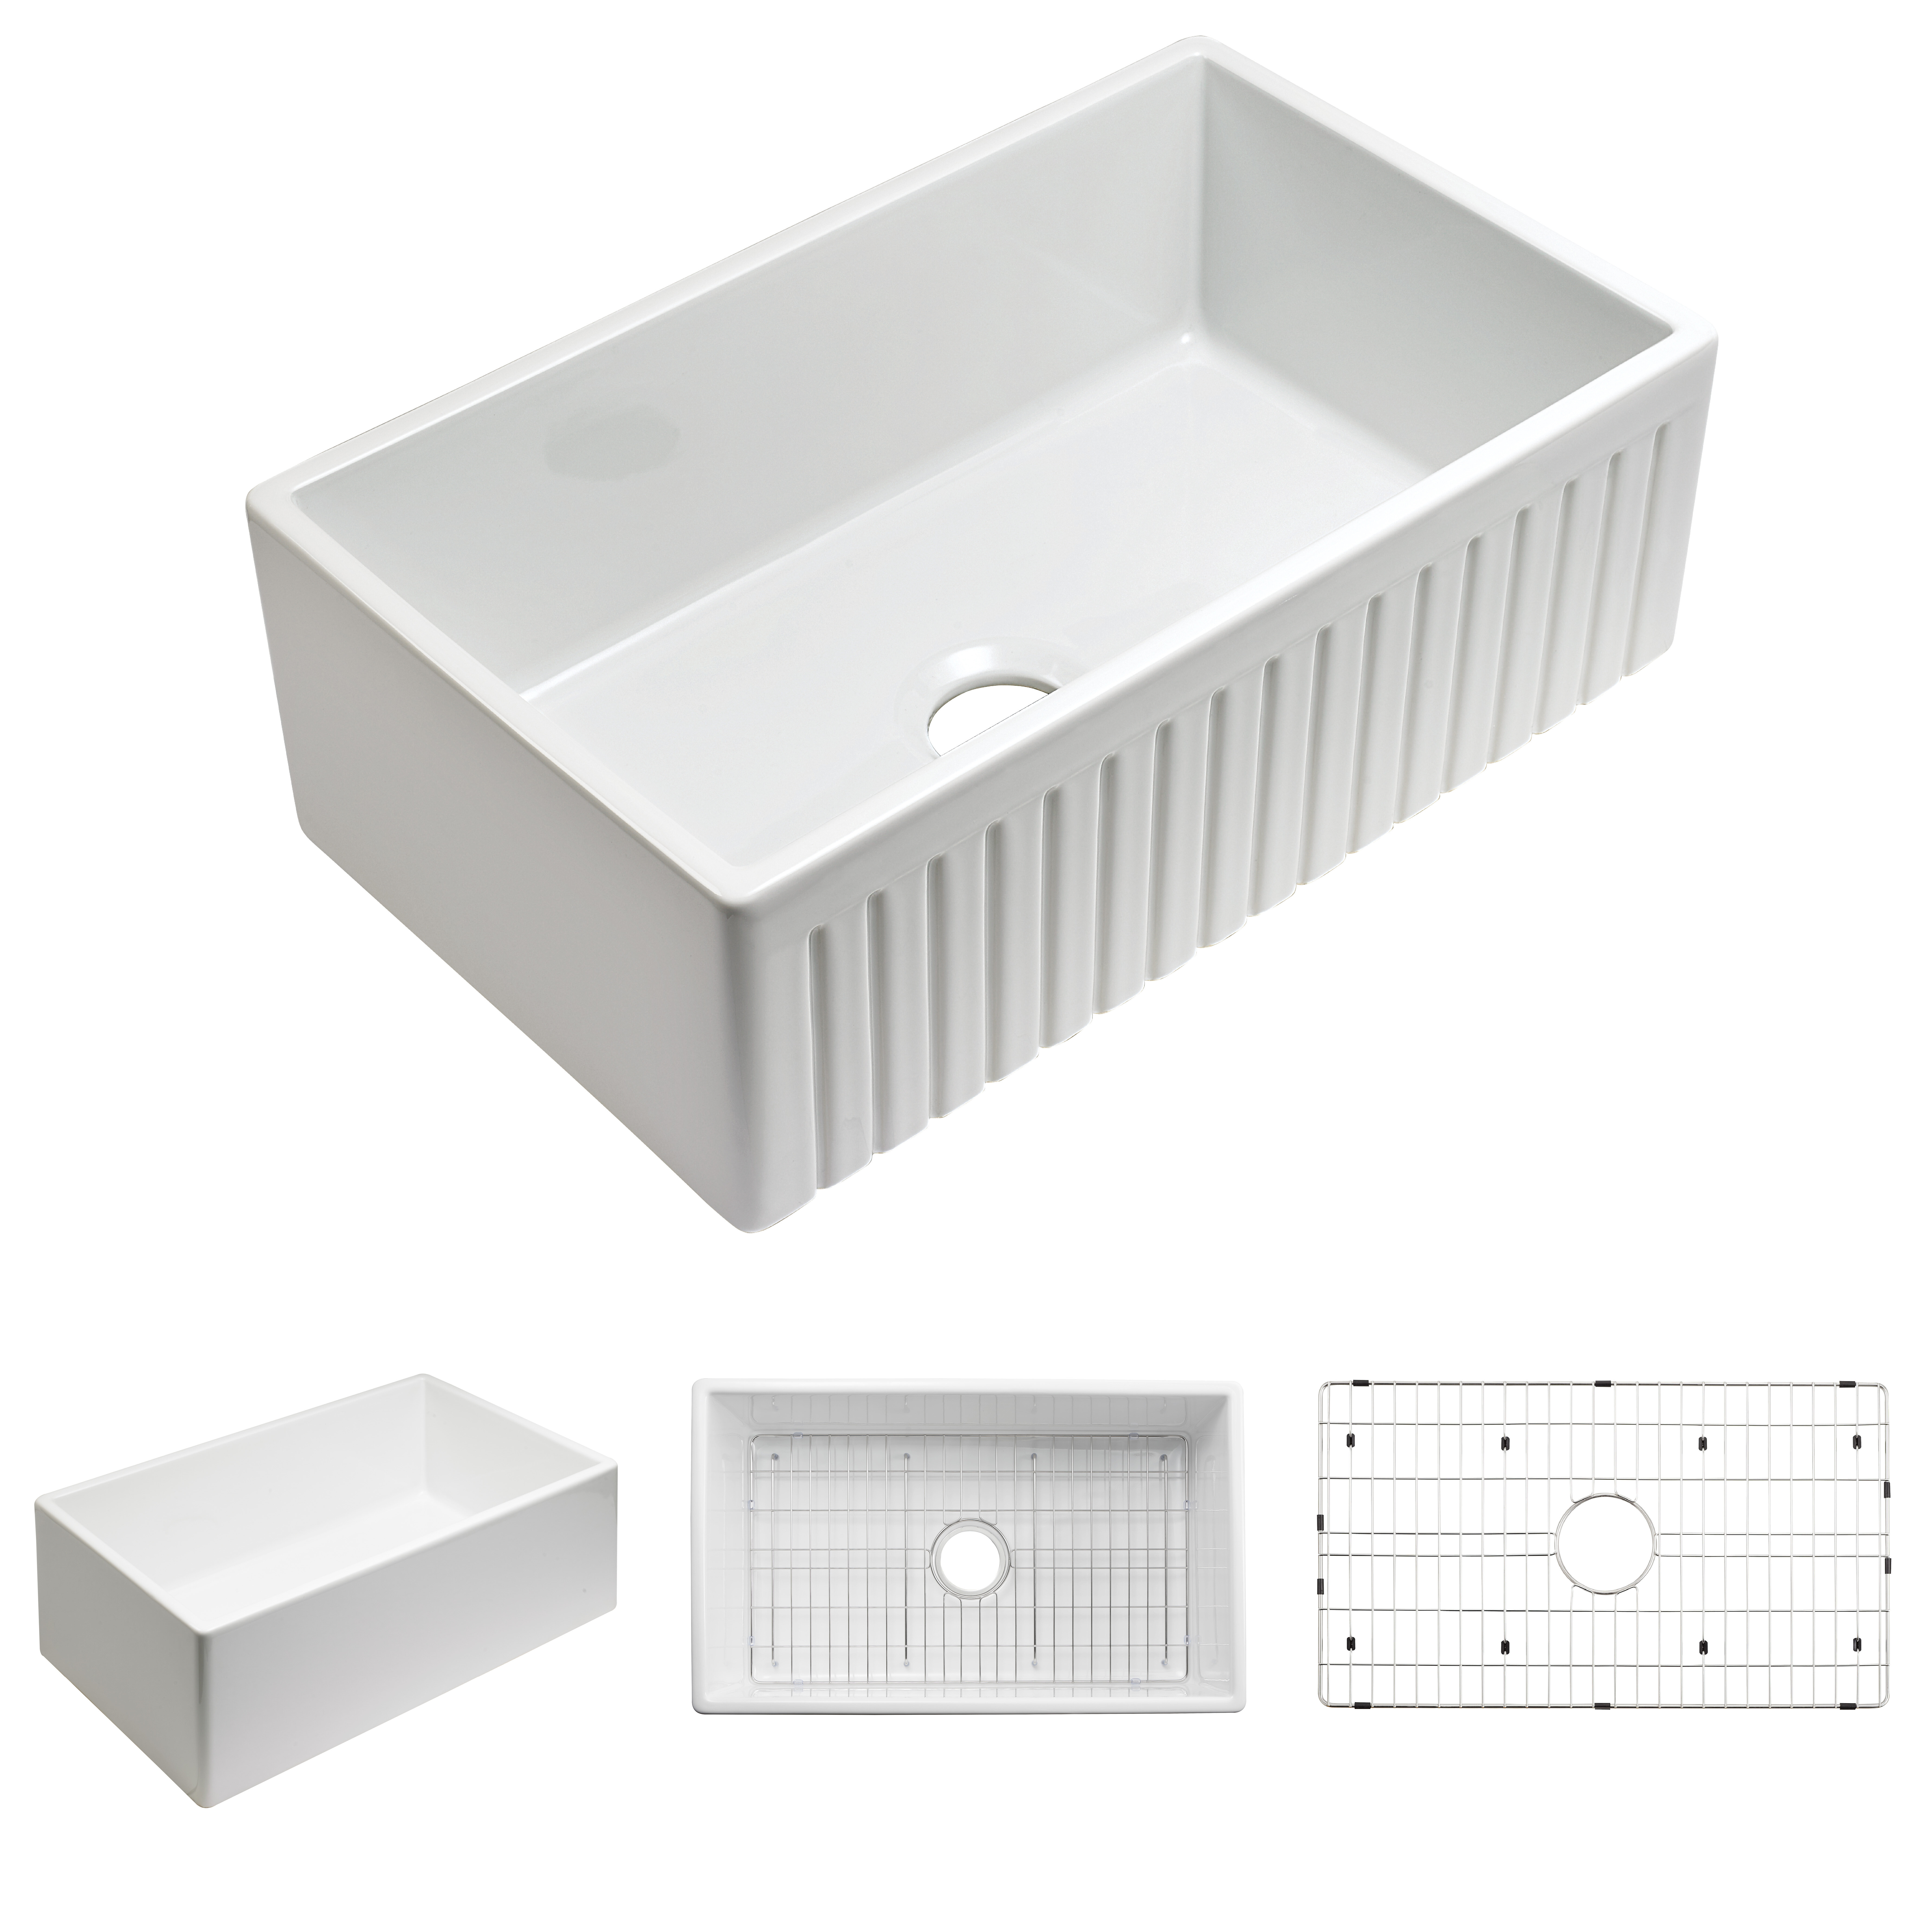 Sutton place 24 l x 18 w farmhouse kitchen sink with grid and strainer reviews allmodern